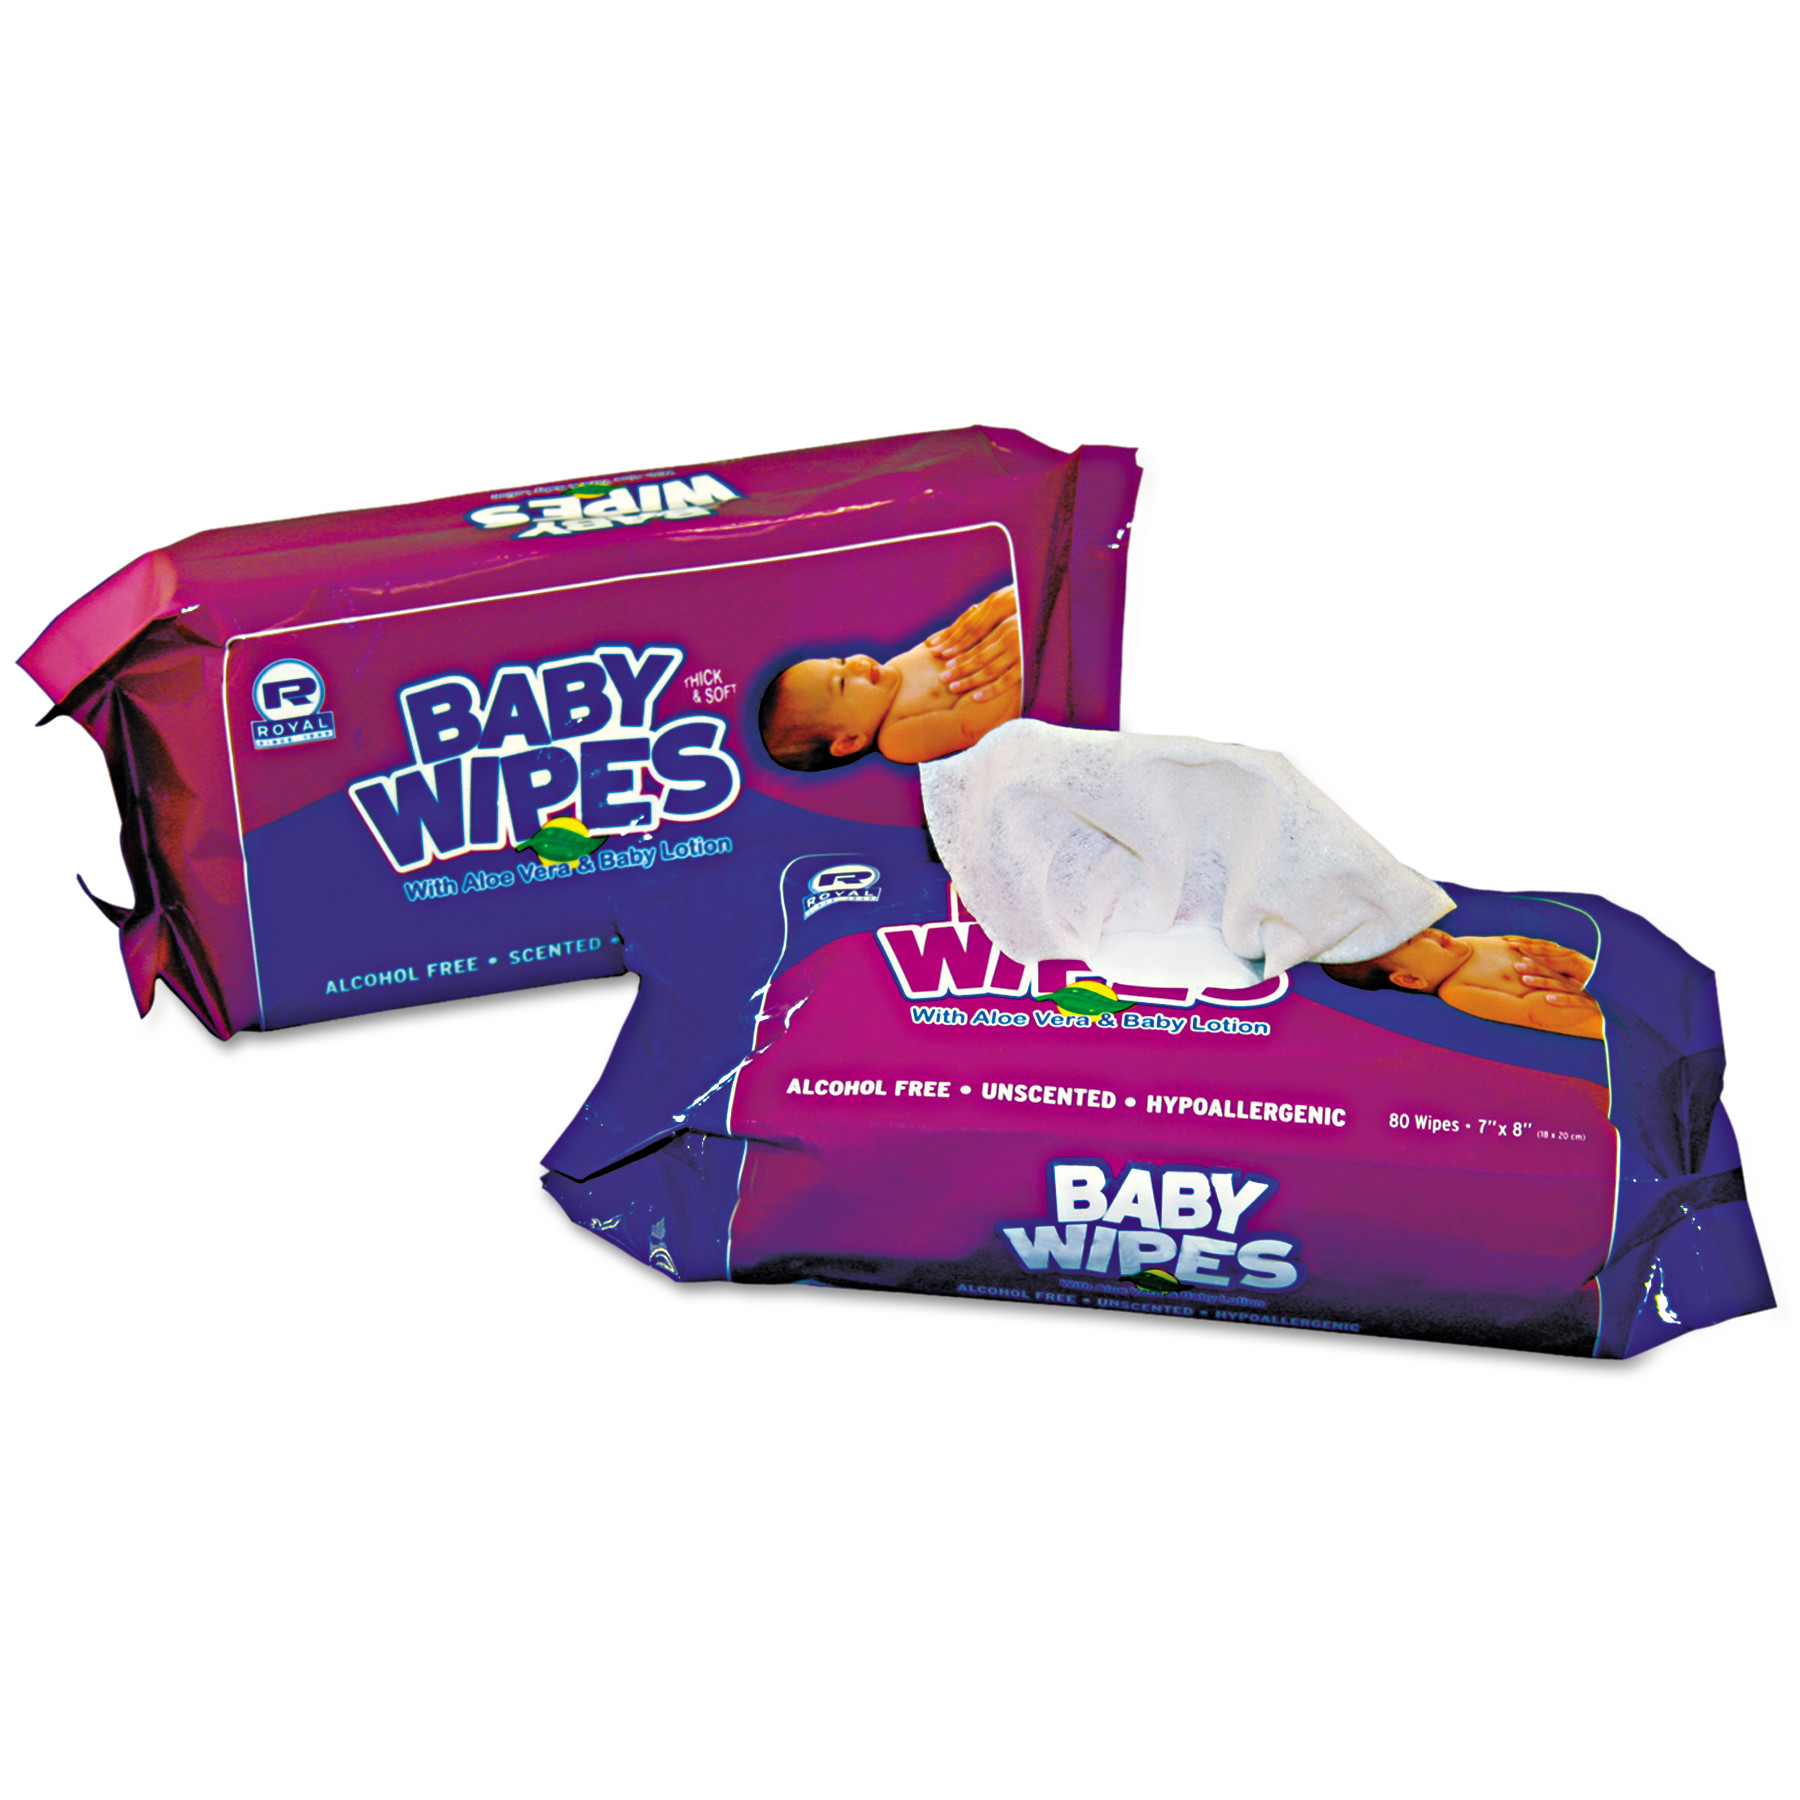 Royal Baby Wipes Refill Pack, White, 80/Pack, 12 Packs/Carton